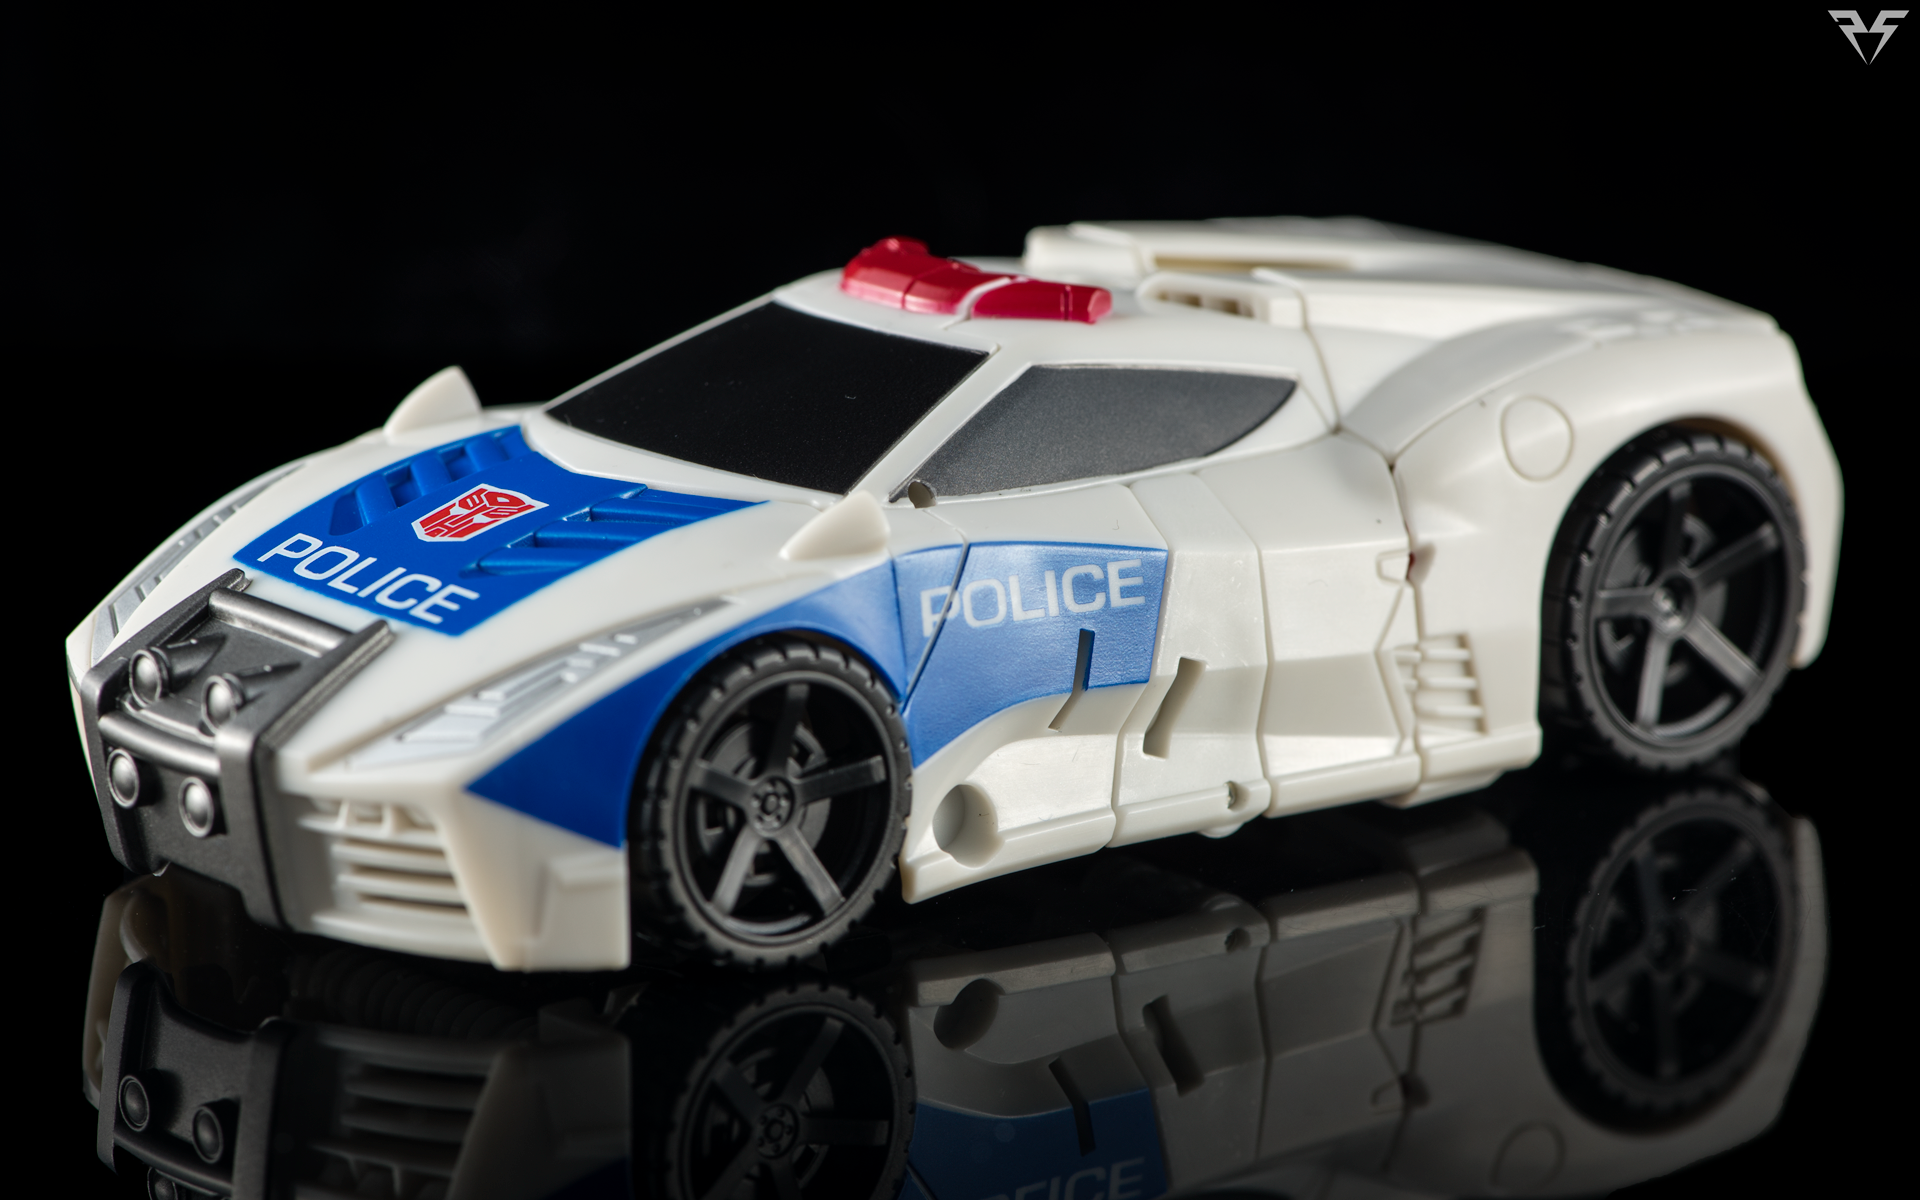 Protectobot Streetwise-14